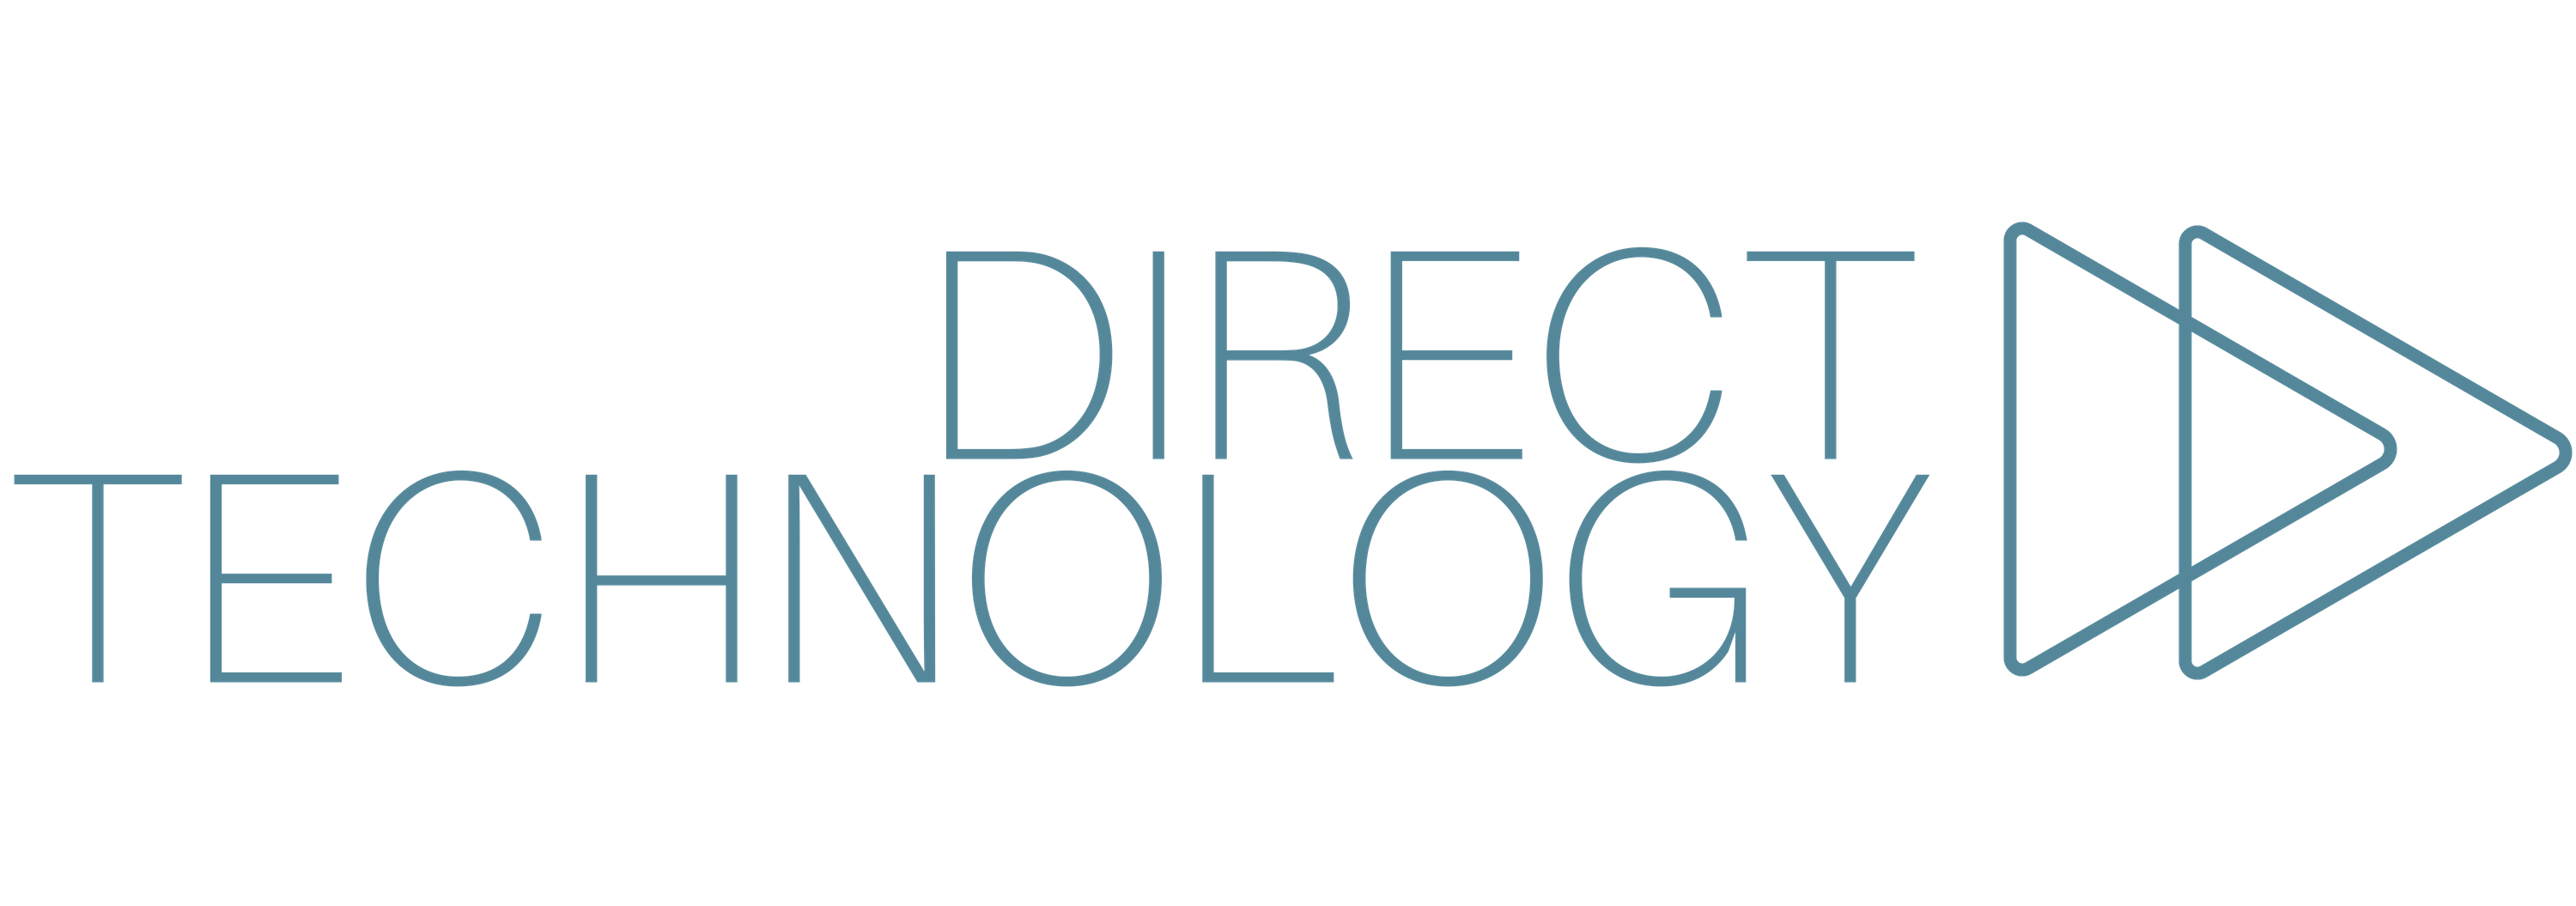 Direct Technology UK LTD